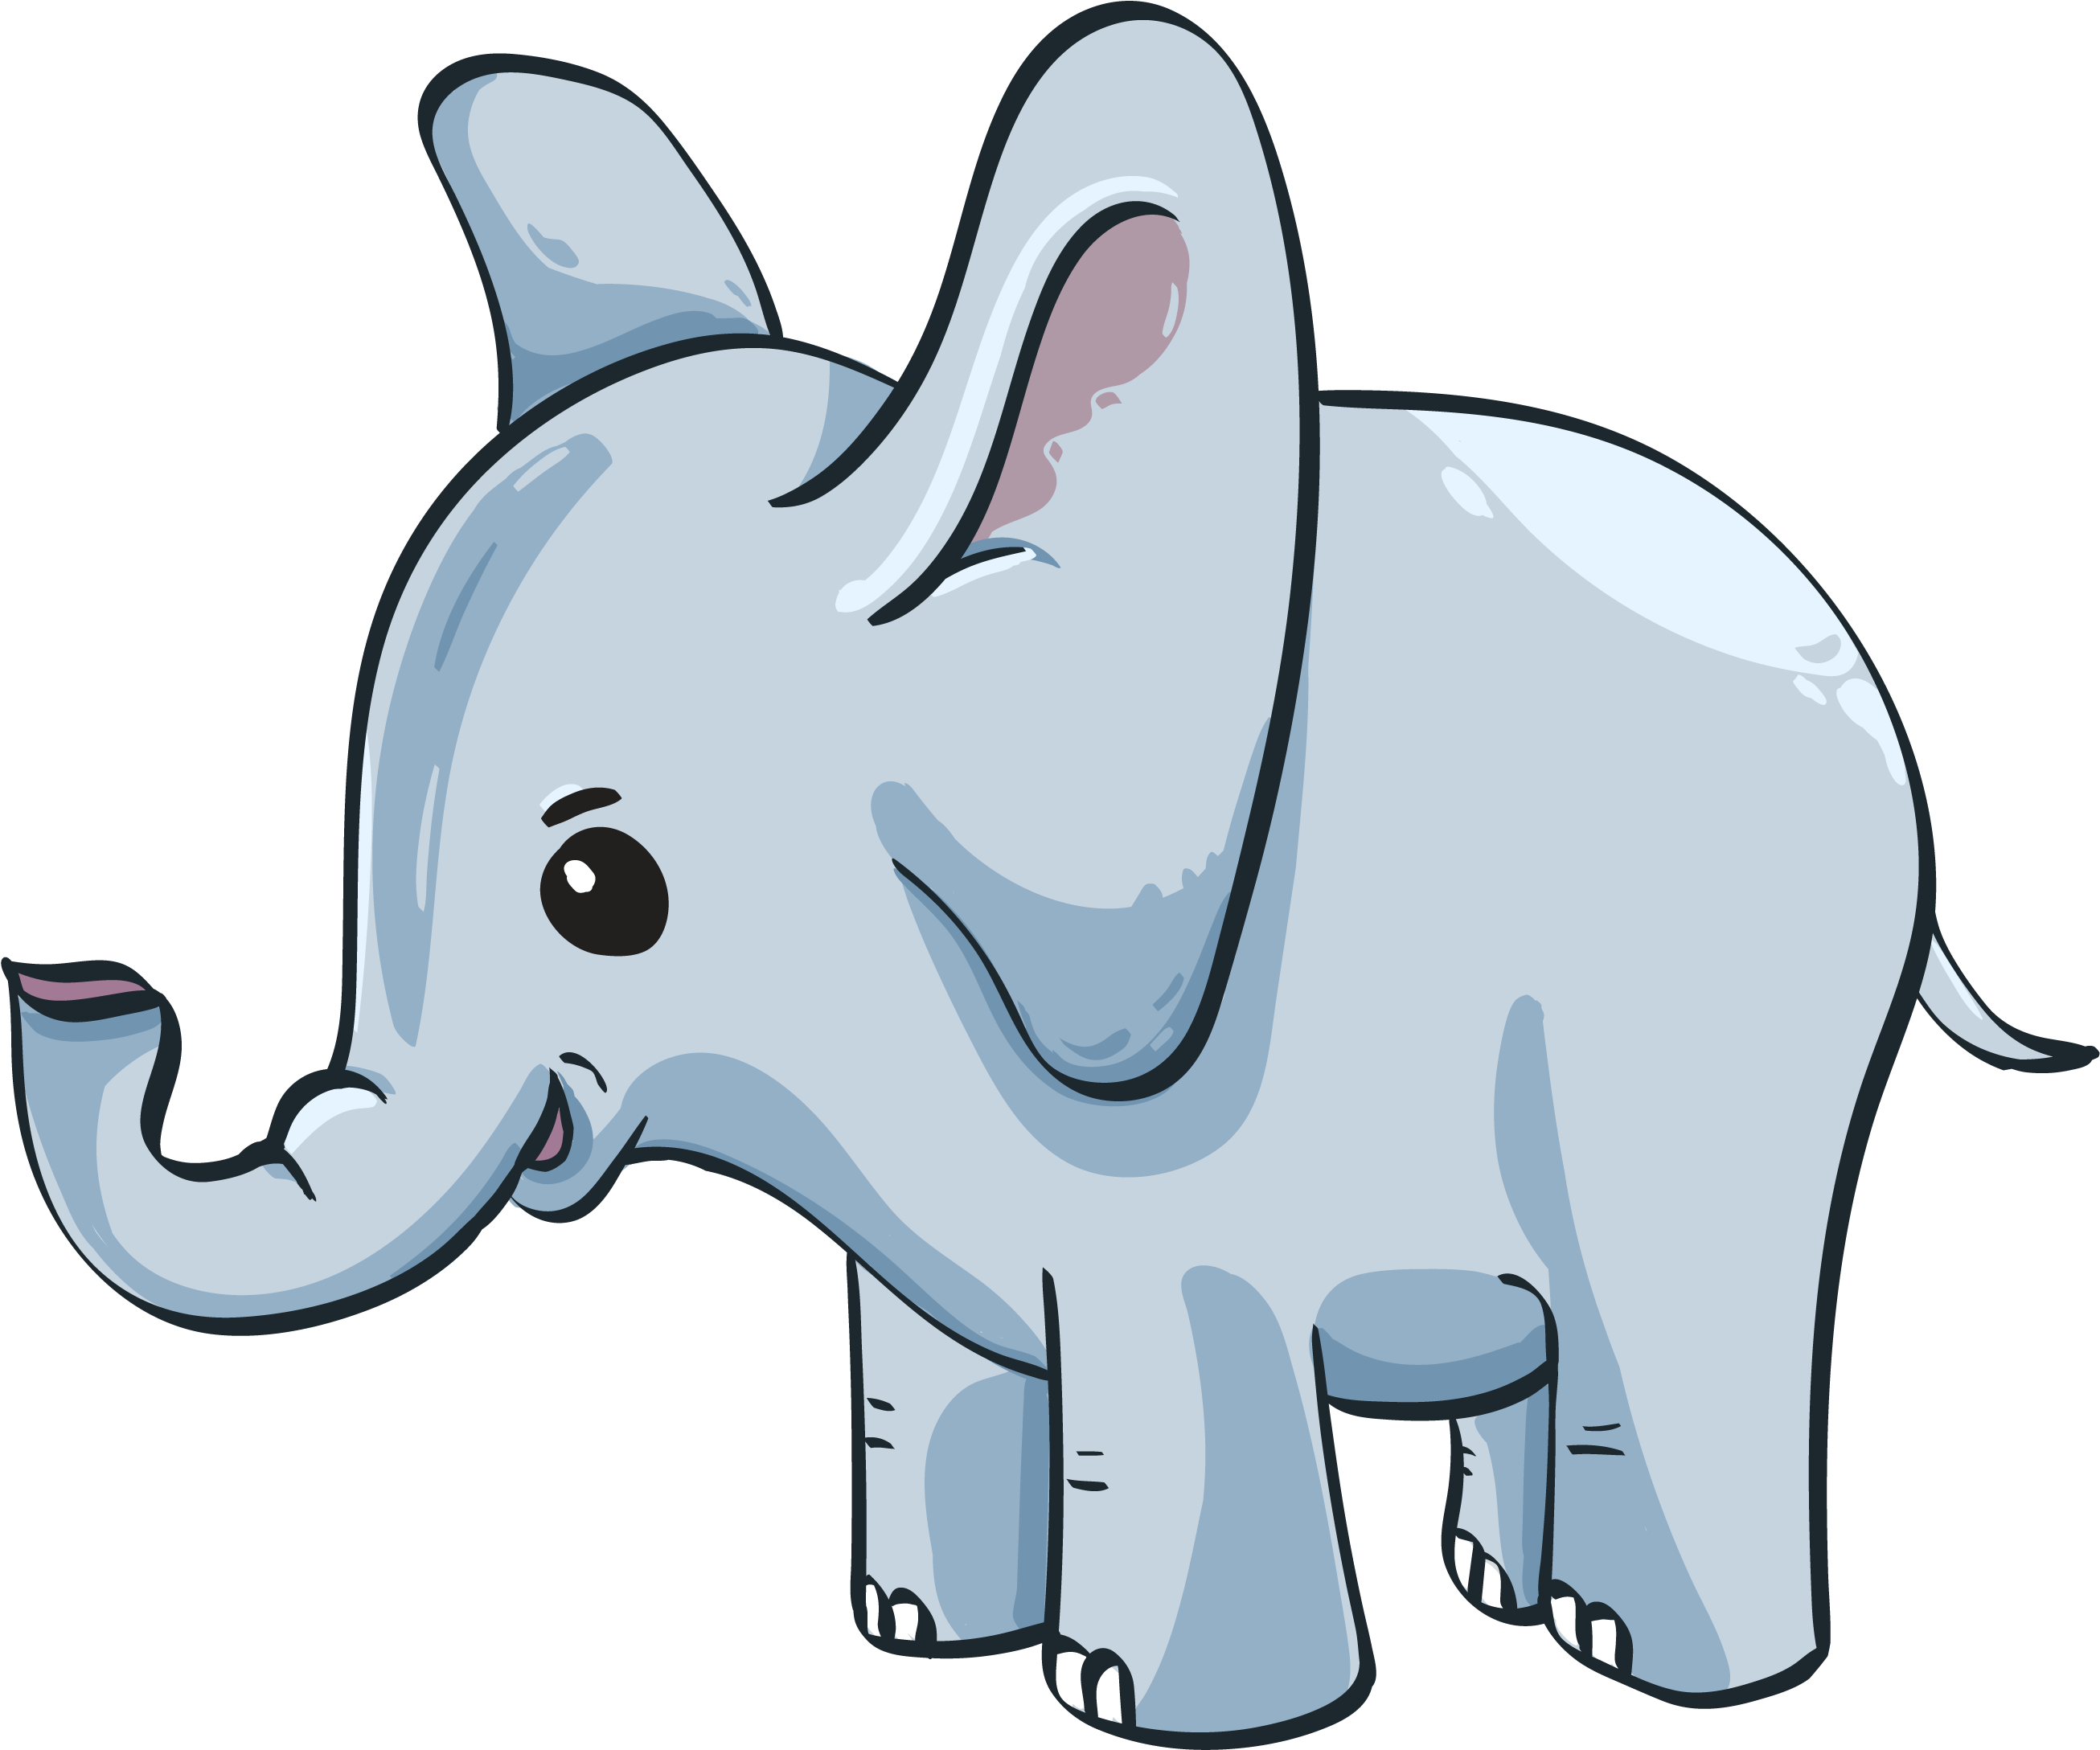 Download Cute Baby Elephant Gambar Anak Gajah Kartun Full Size